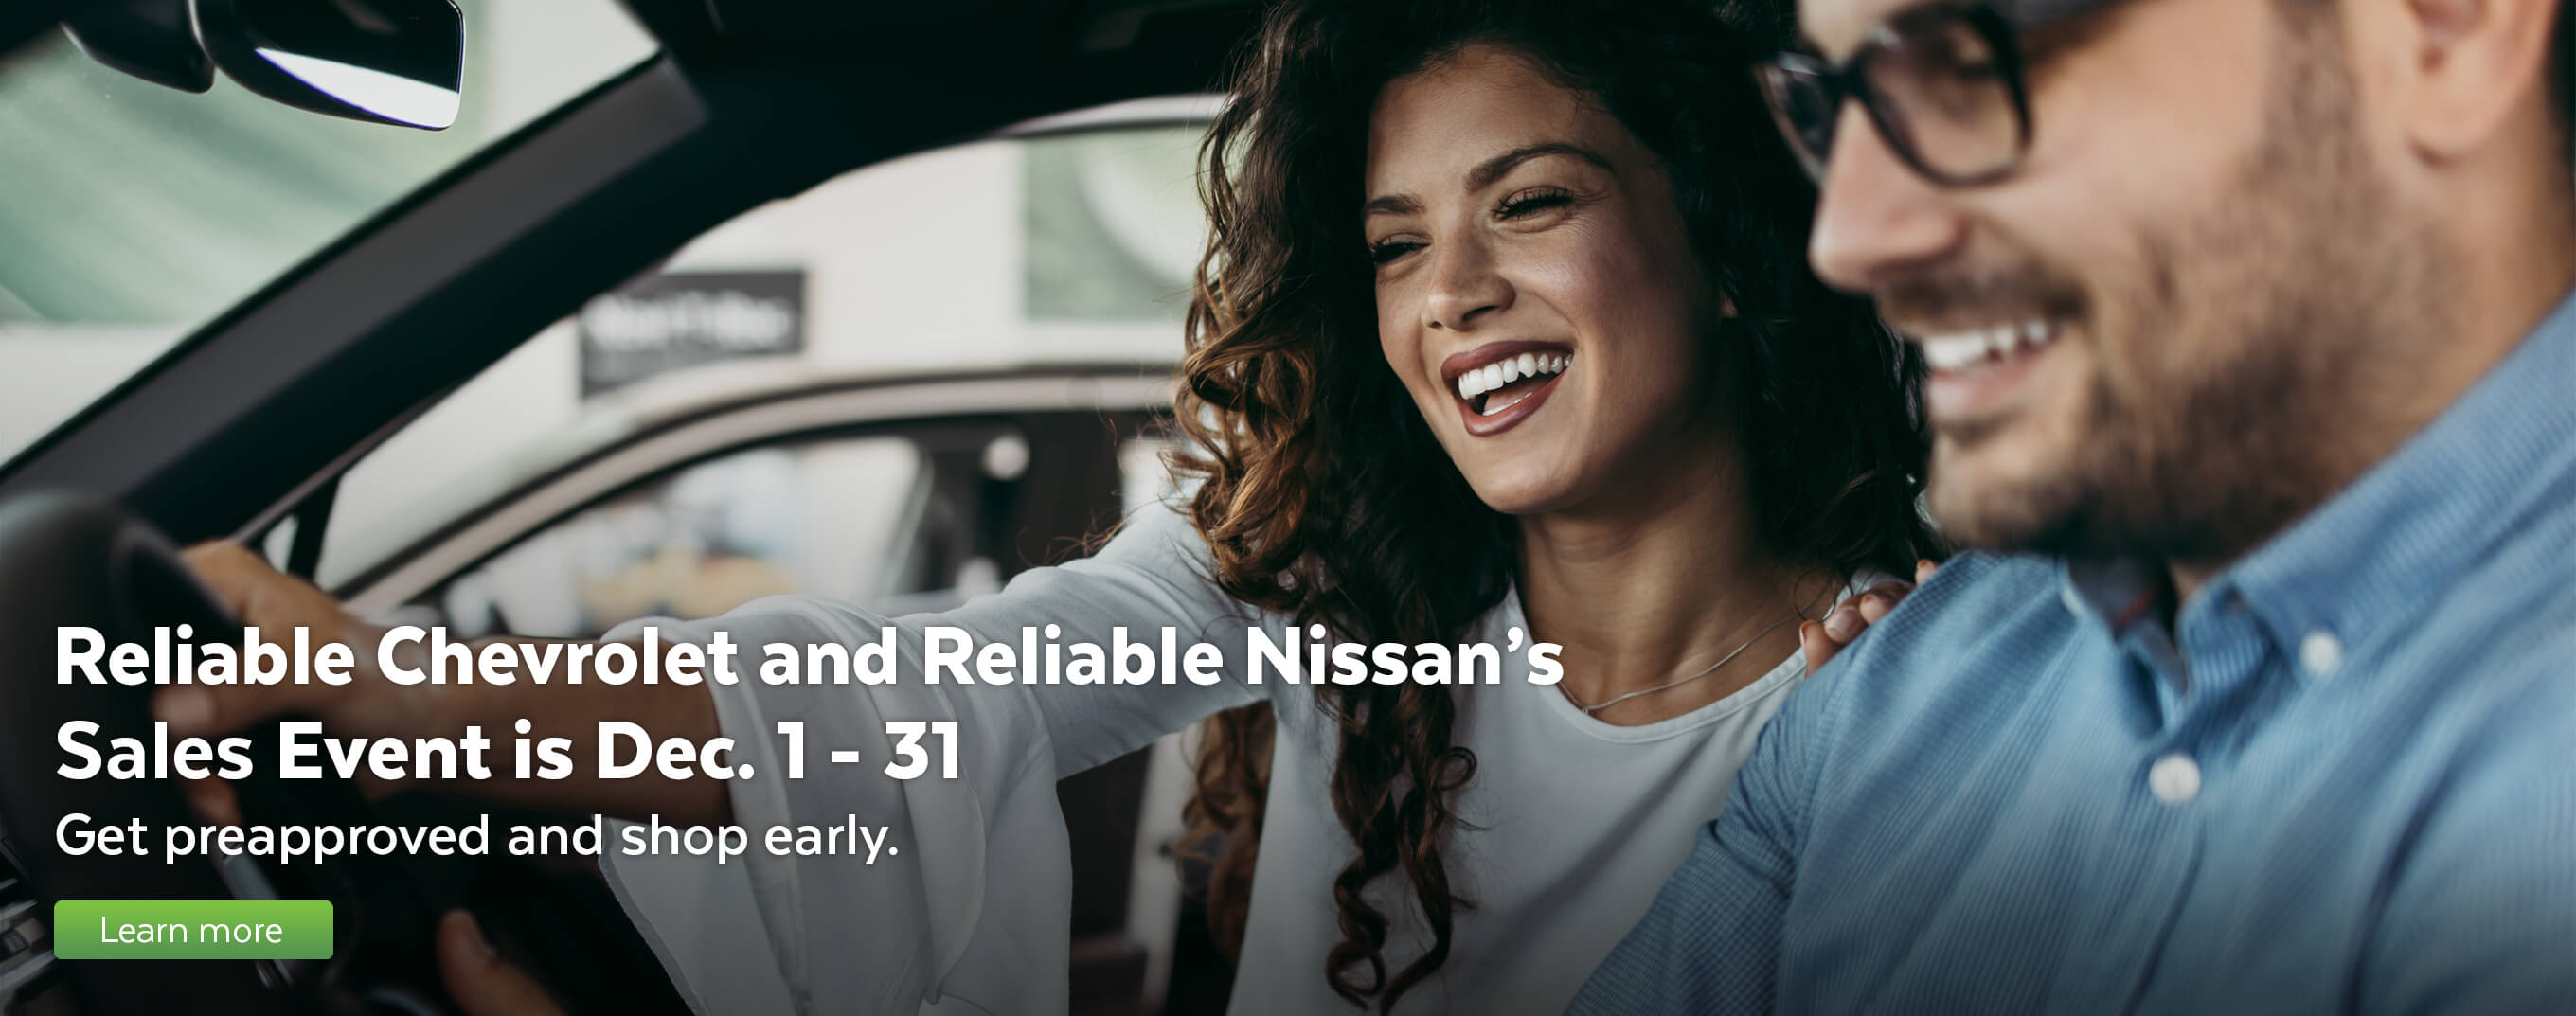 Reliable Chevrolet and Reliable Nissan's sales event is December 1-31.